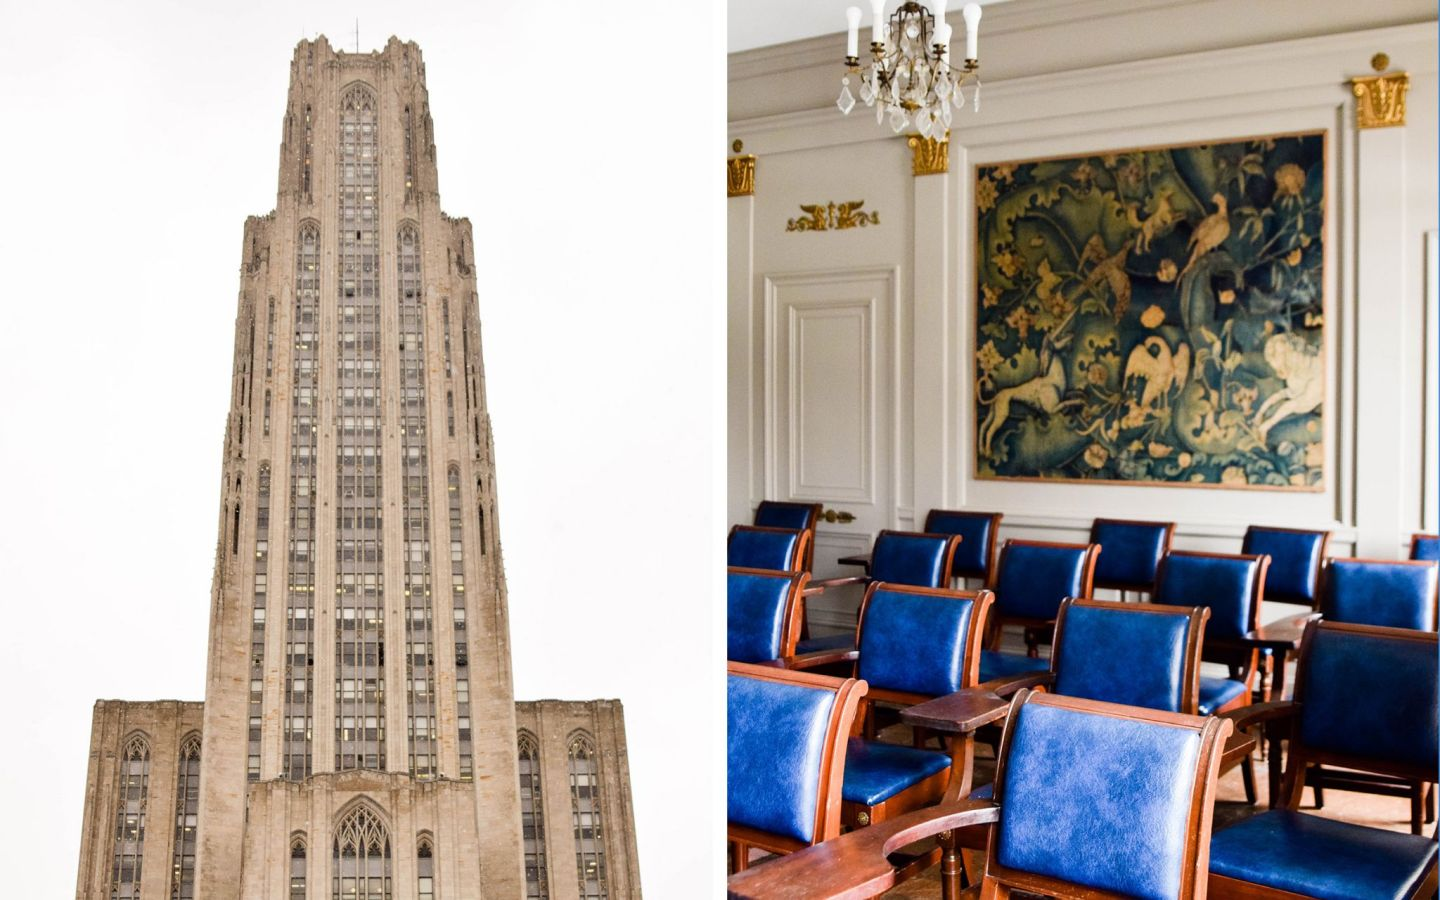 weekend in pittsburgh - pittsburgh travel guide - cathedral of higher learning - university of pittsburgh